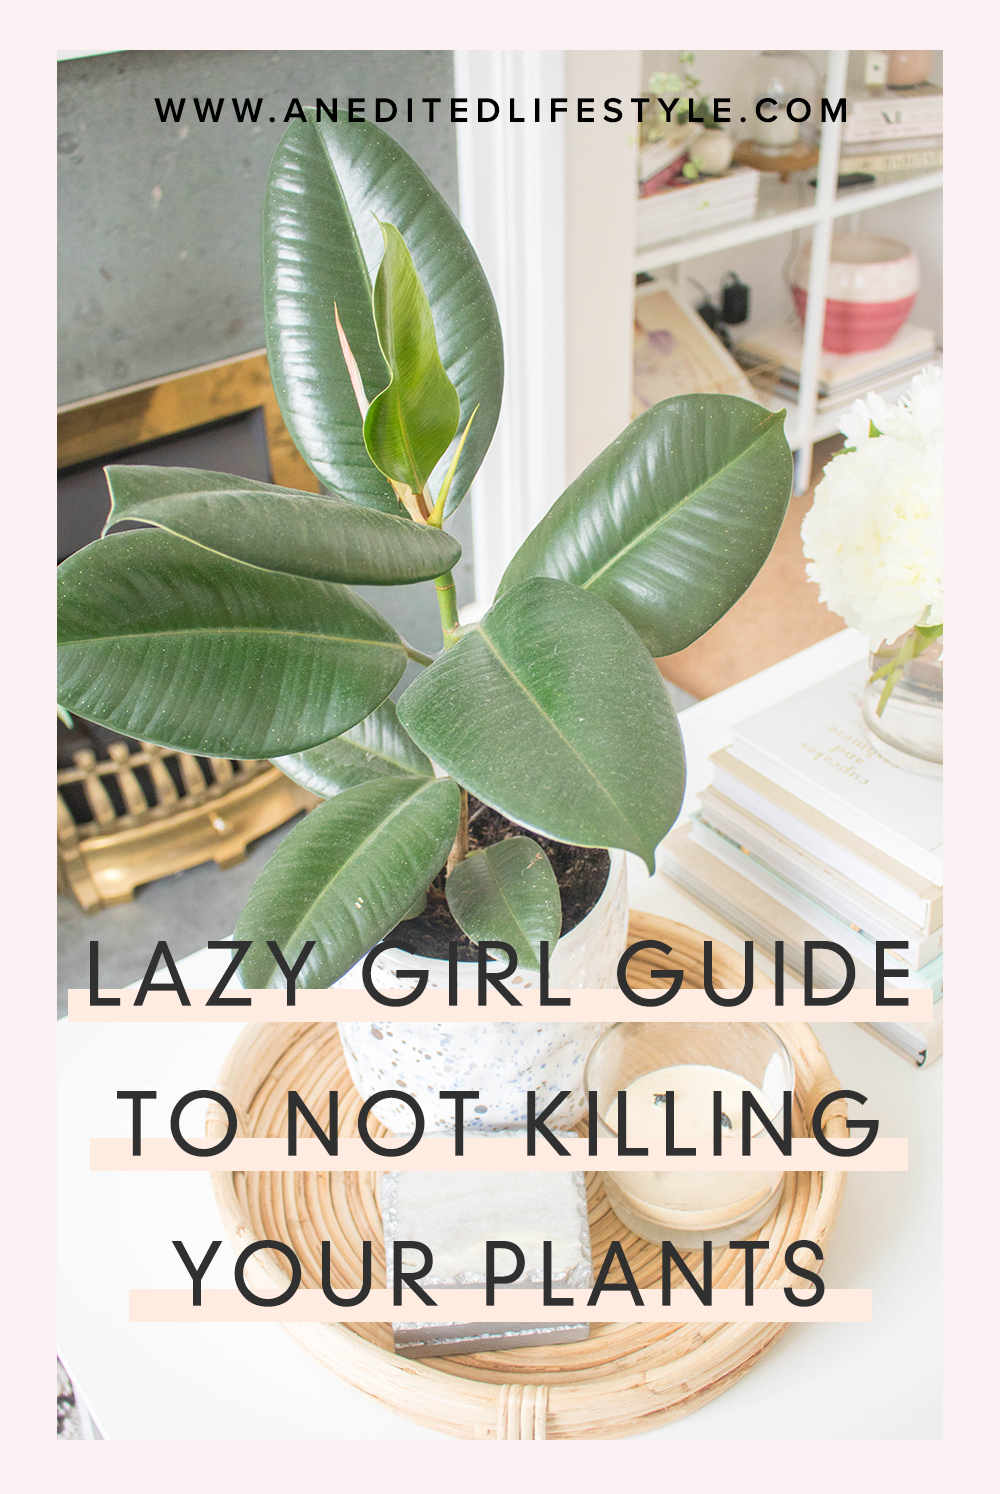 an edited lifestyle plant guide